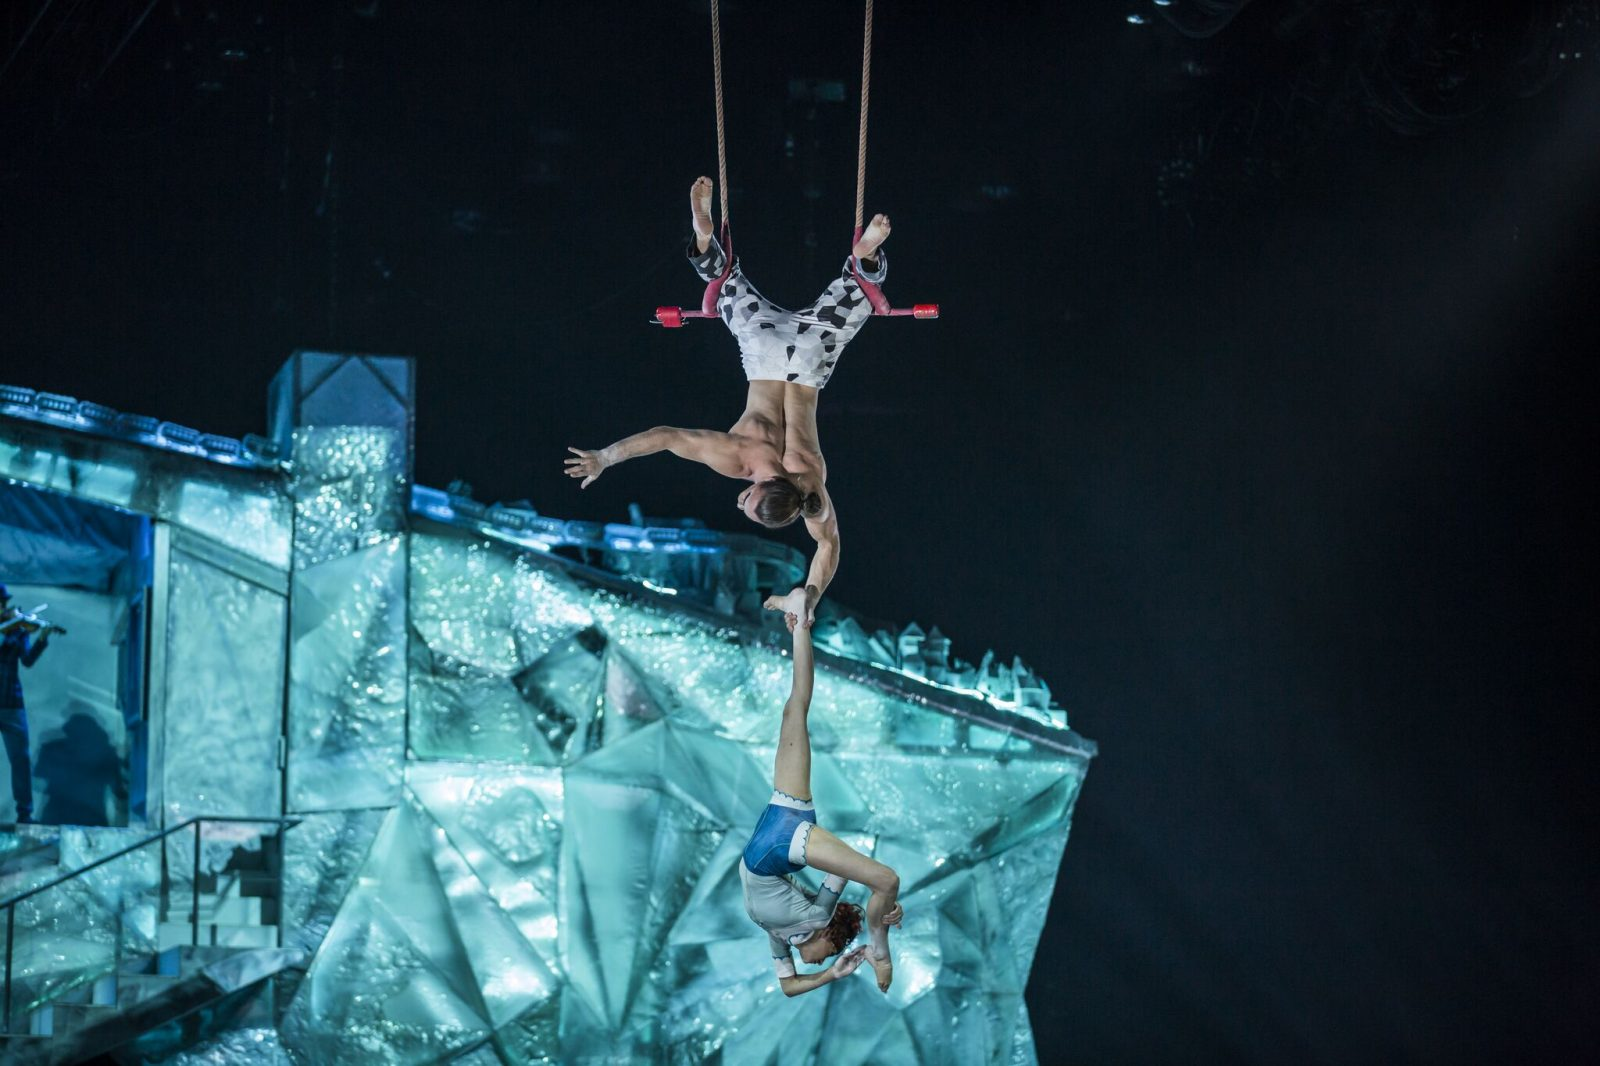 performer hanging from trapeze by his feet, holding onto one leg of female performer hanging beneath him and bringing other leg up to head